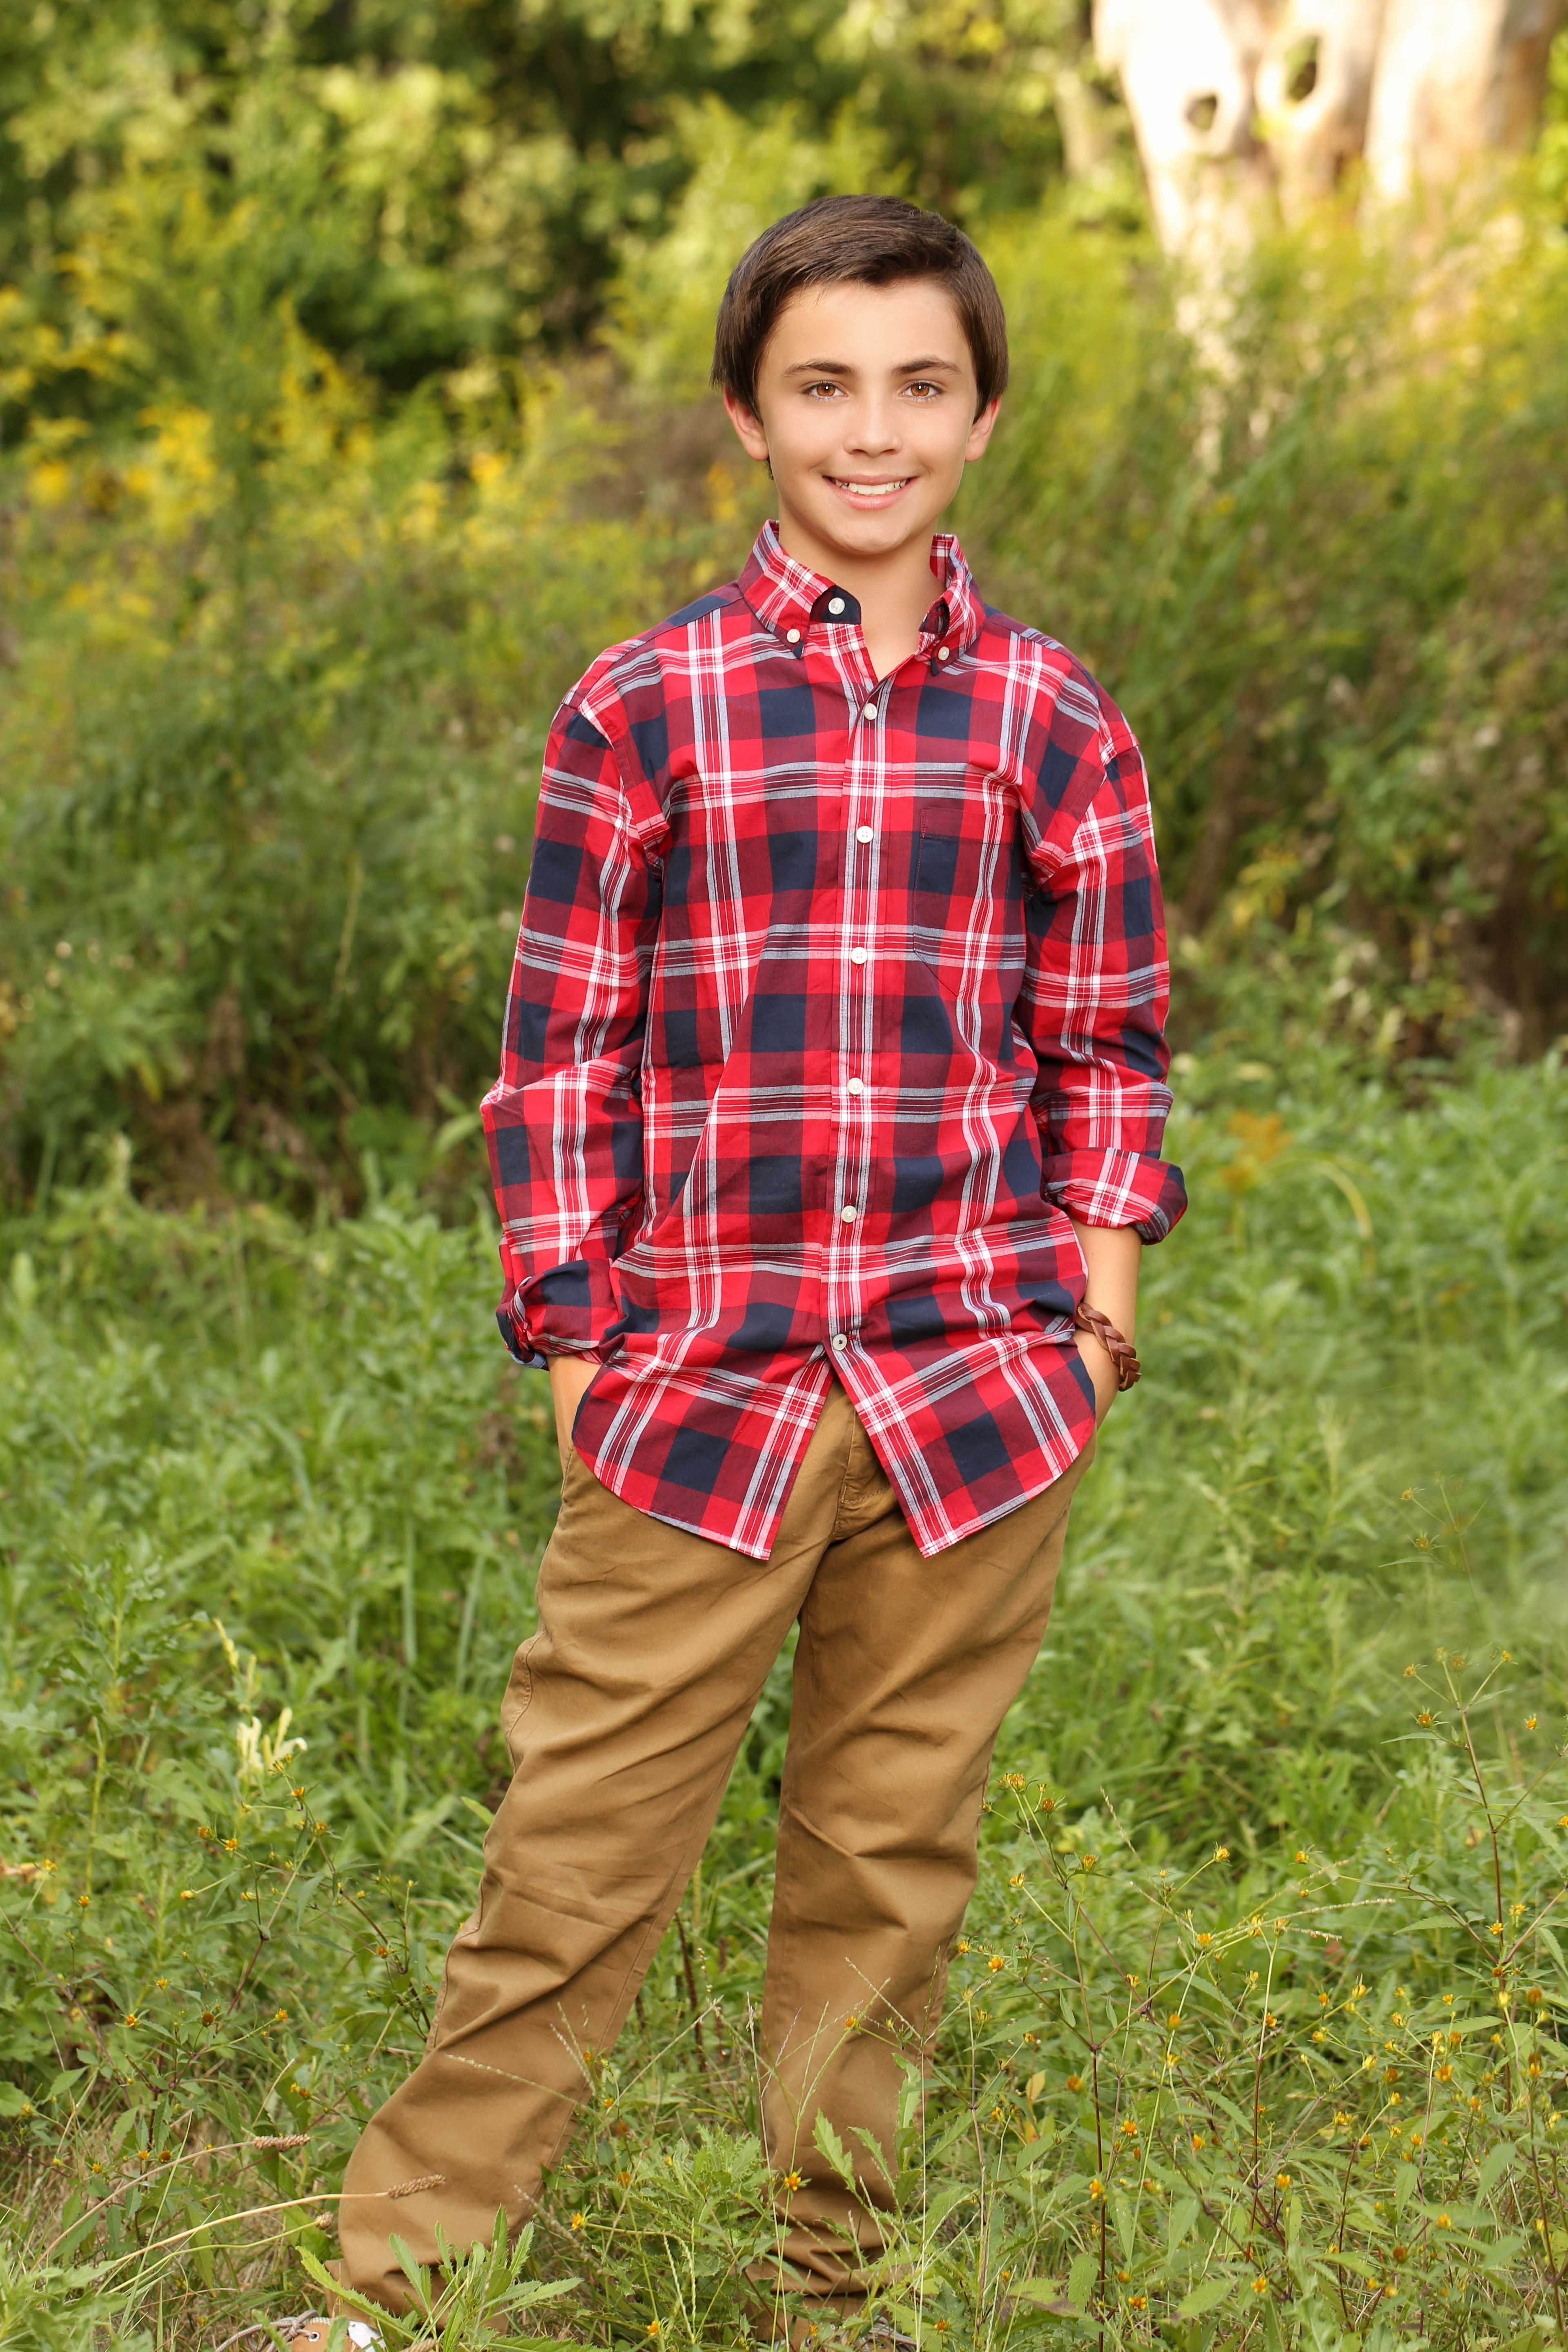 eeca09d1a8b7 Outfit from American Eagle Outfitters for my 12 year old (That hard in  between stage for boys)! (Actual photo of my son:)